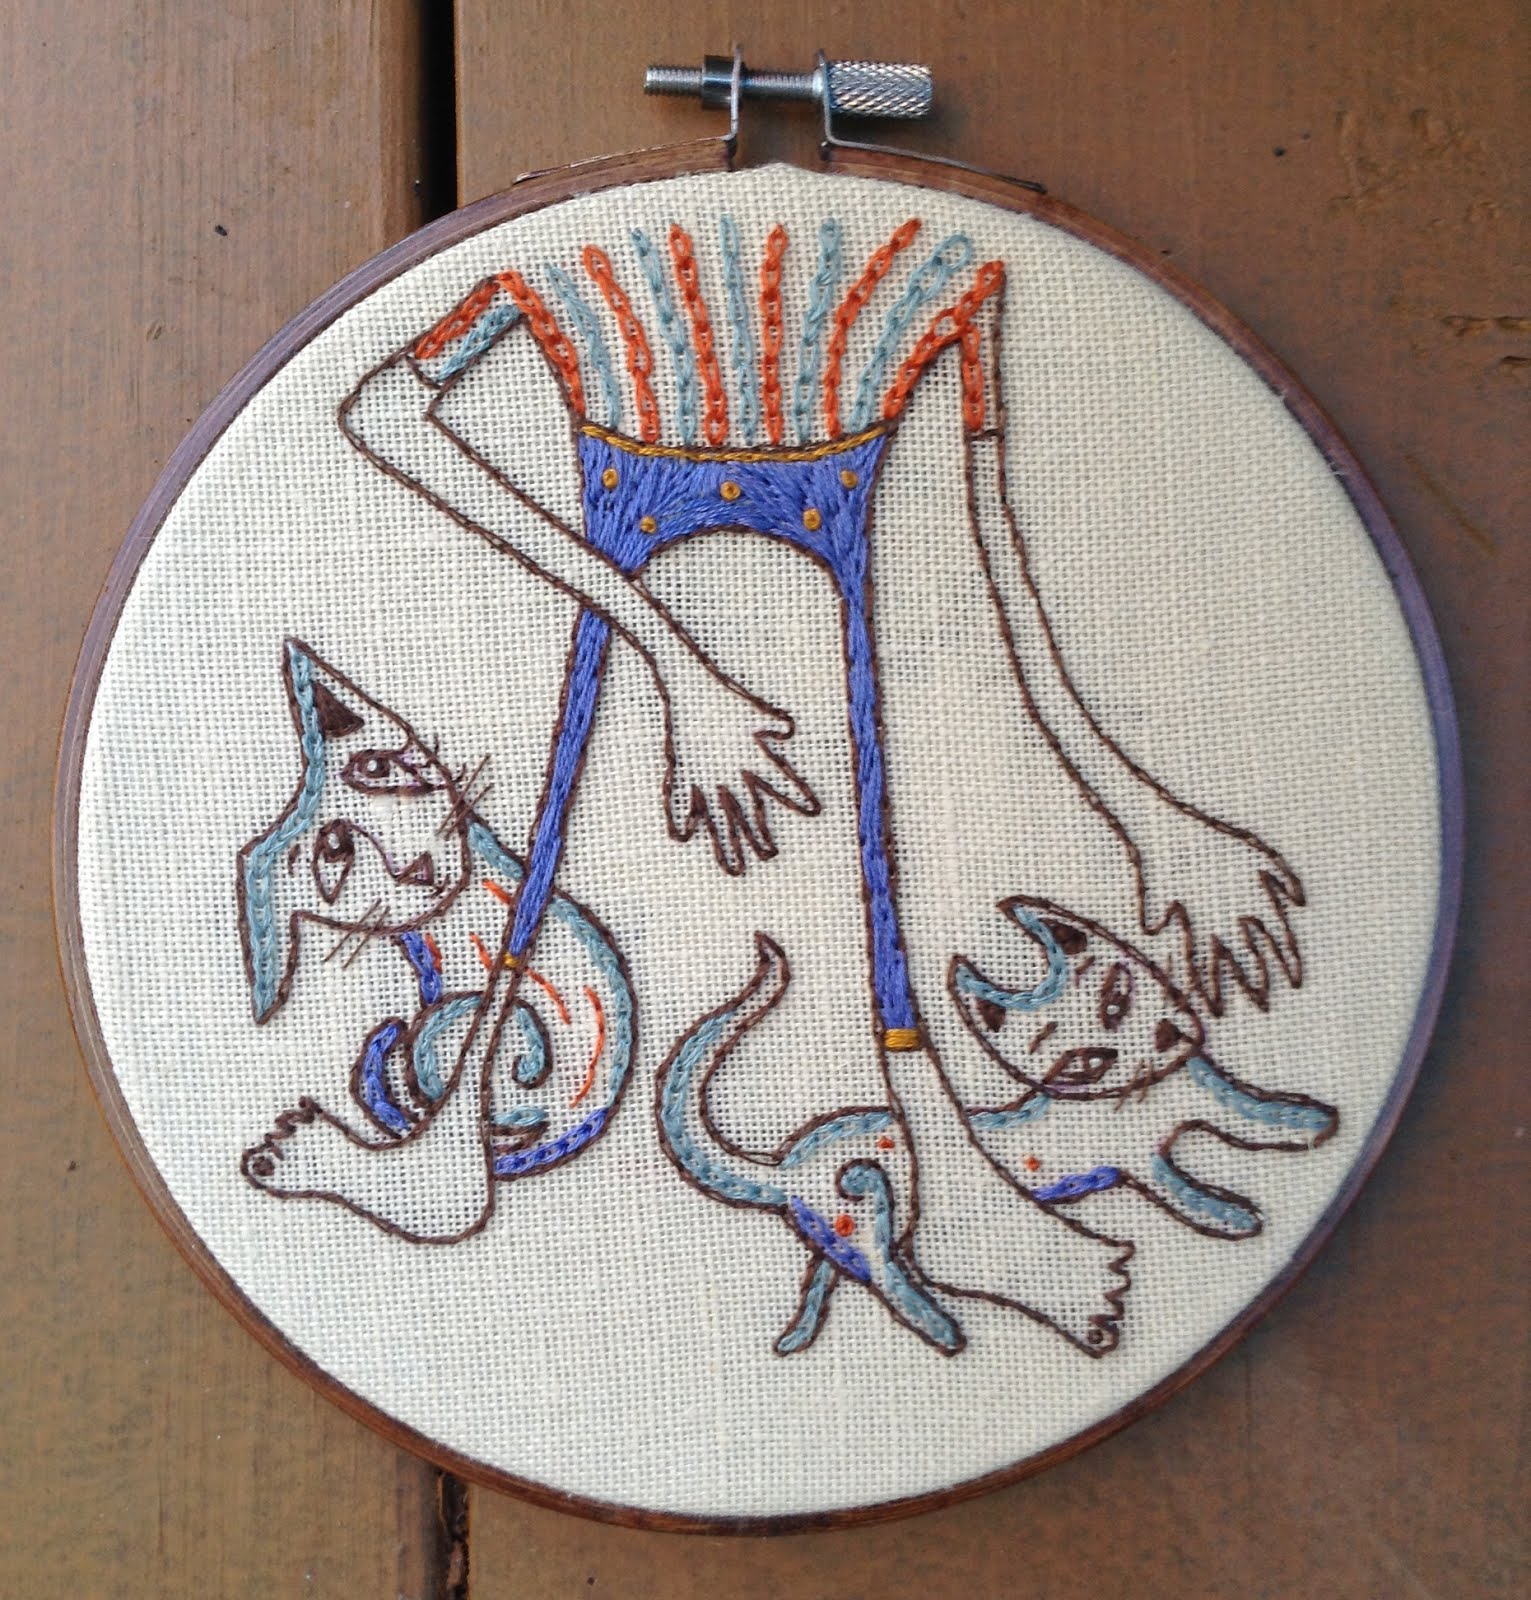 Find My Embroidery Here: